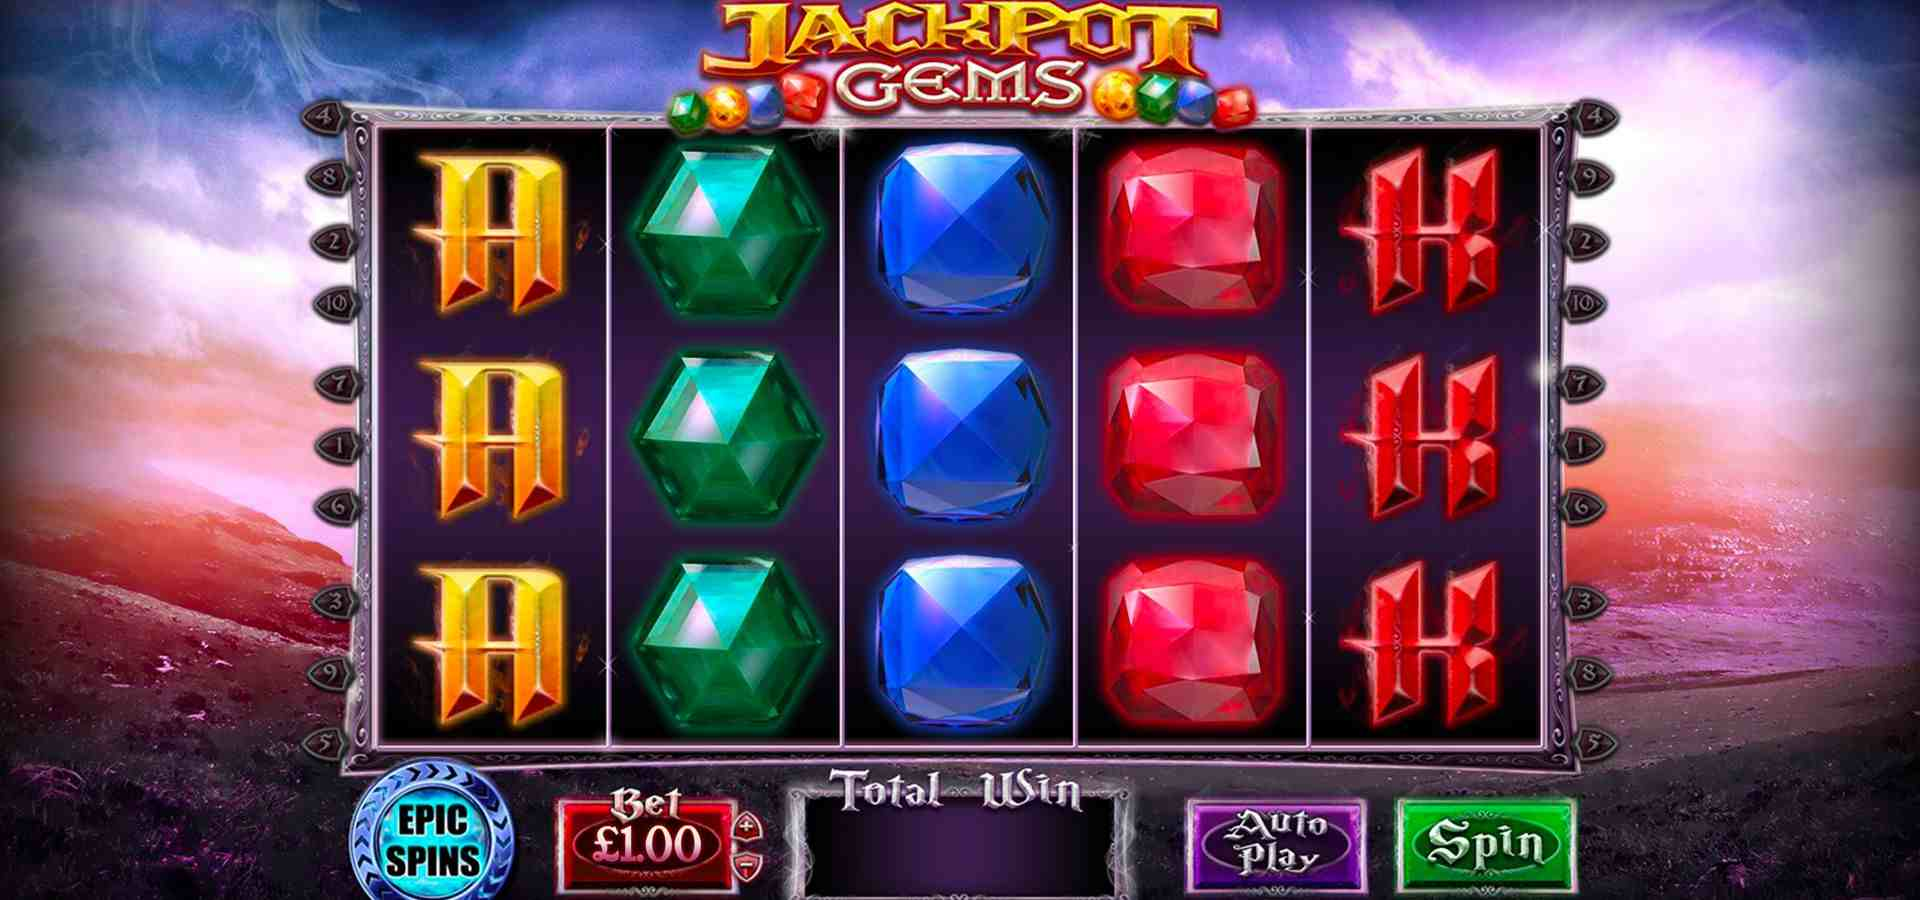 Bingo Sites with Jackpot Gems